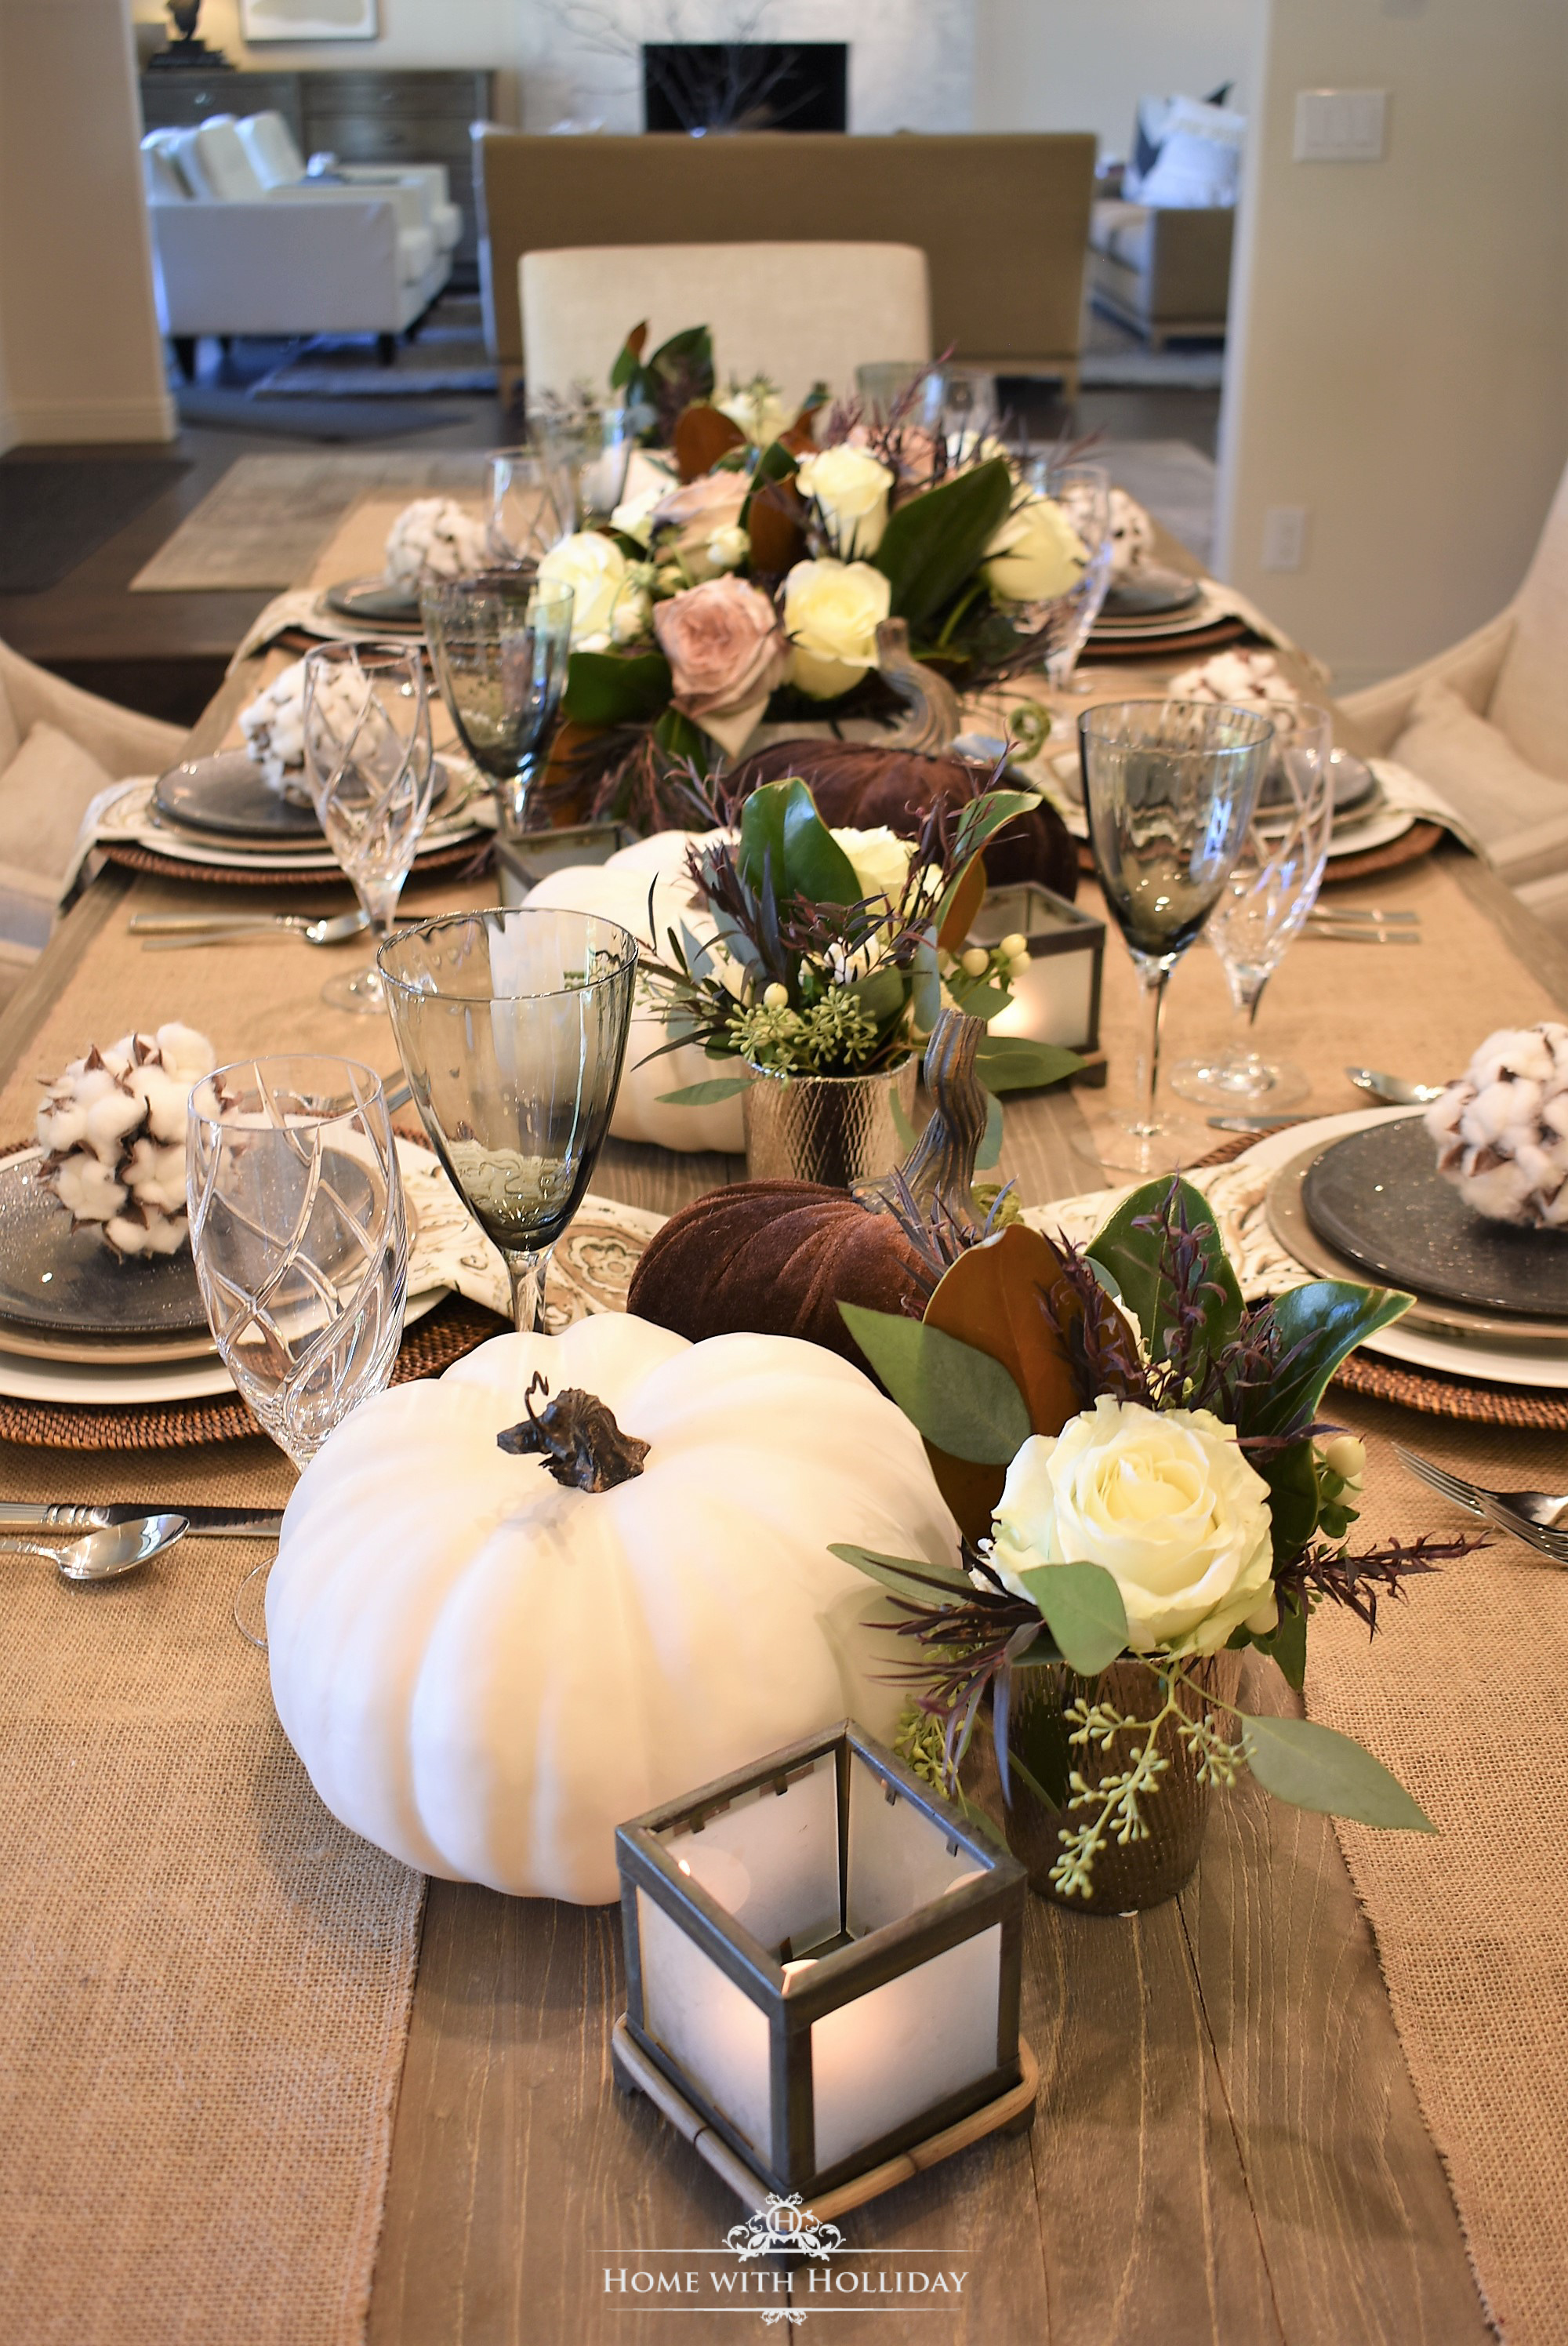 Fall Table Setting with Brown and White Pumpkins Centerpiece